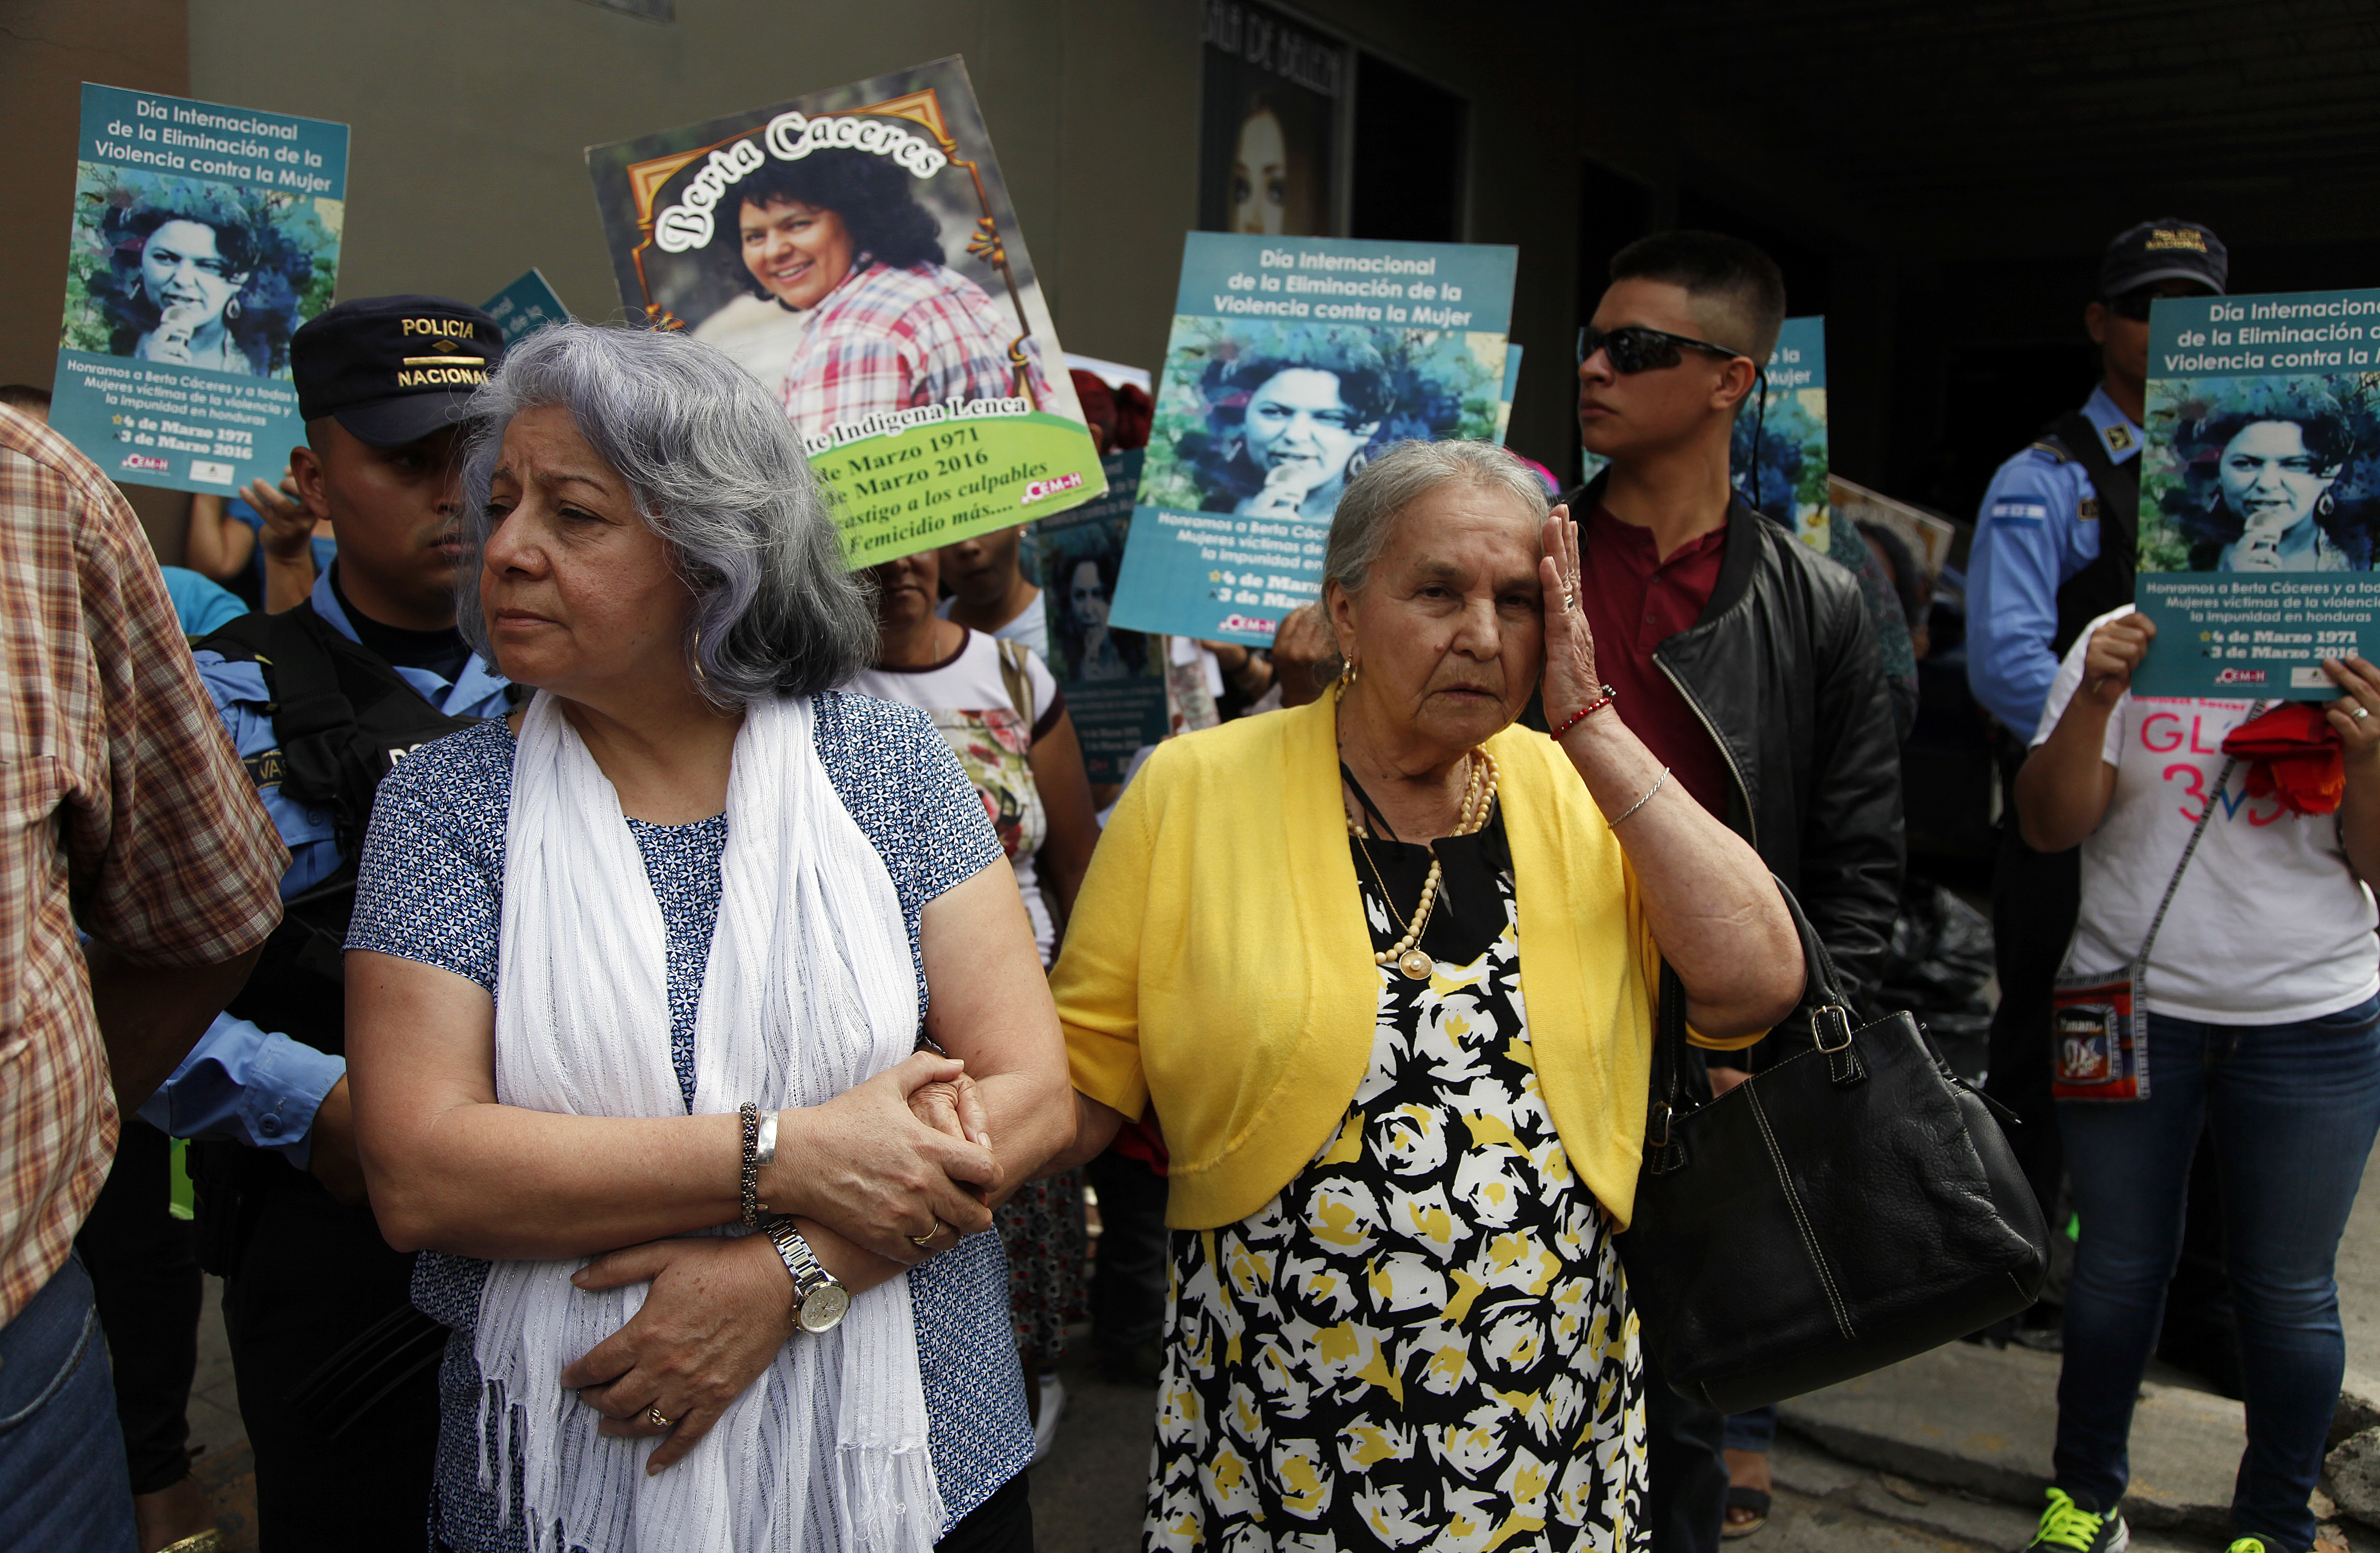 Honduran human rights defender Bertha Oliva, left, stands arm in arm with Austra Bertha Flores, the mother of slain environmental activist and Goldman Environmental Prize winner Berta Caceres, during a protest demanding justice for Caceres, outside t...